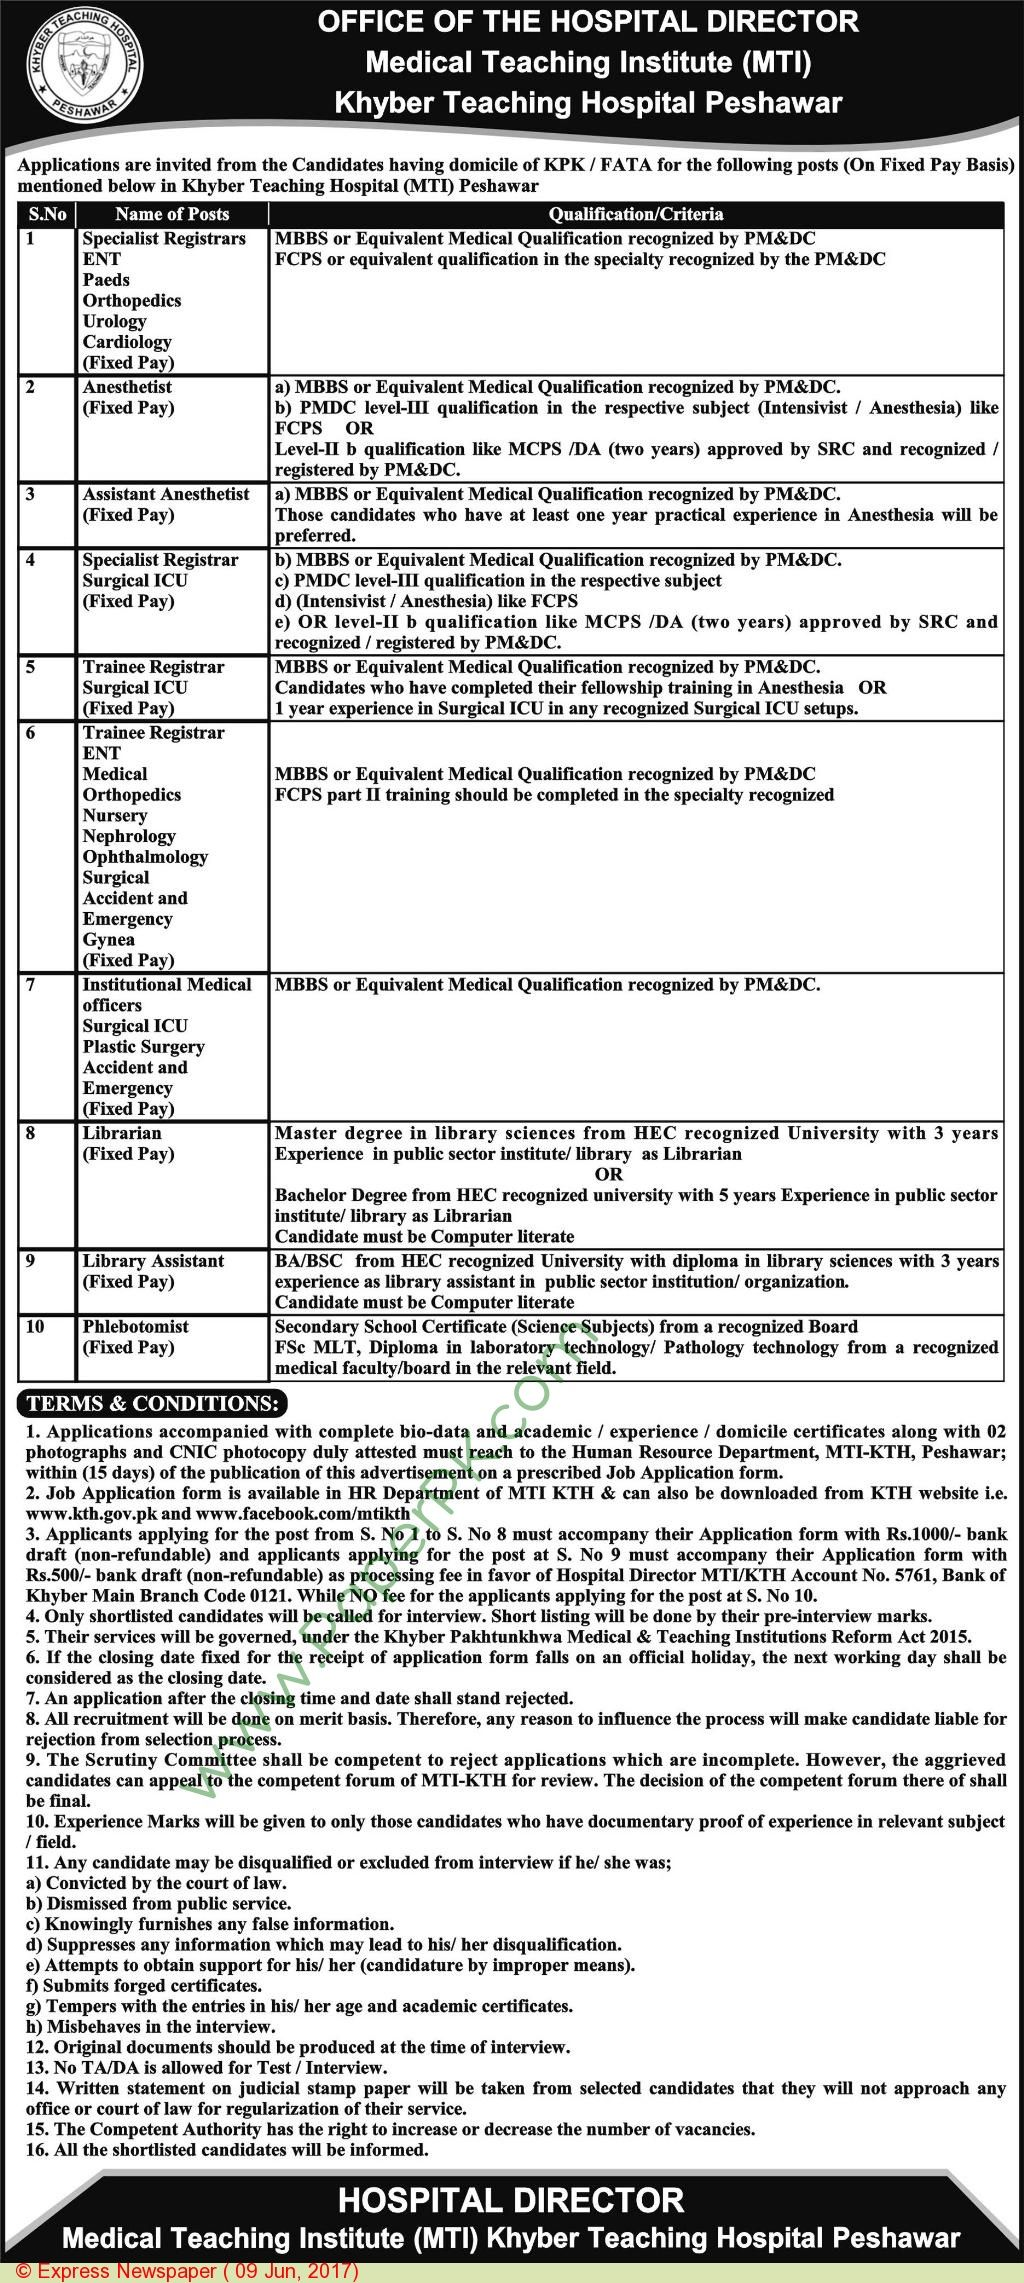 Medical Teaching Institute Khyber Teaching Hospital Peshawar Jobs